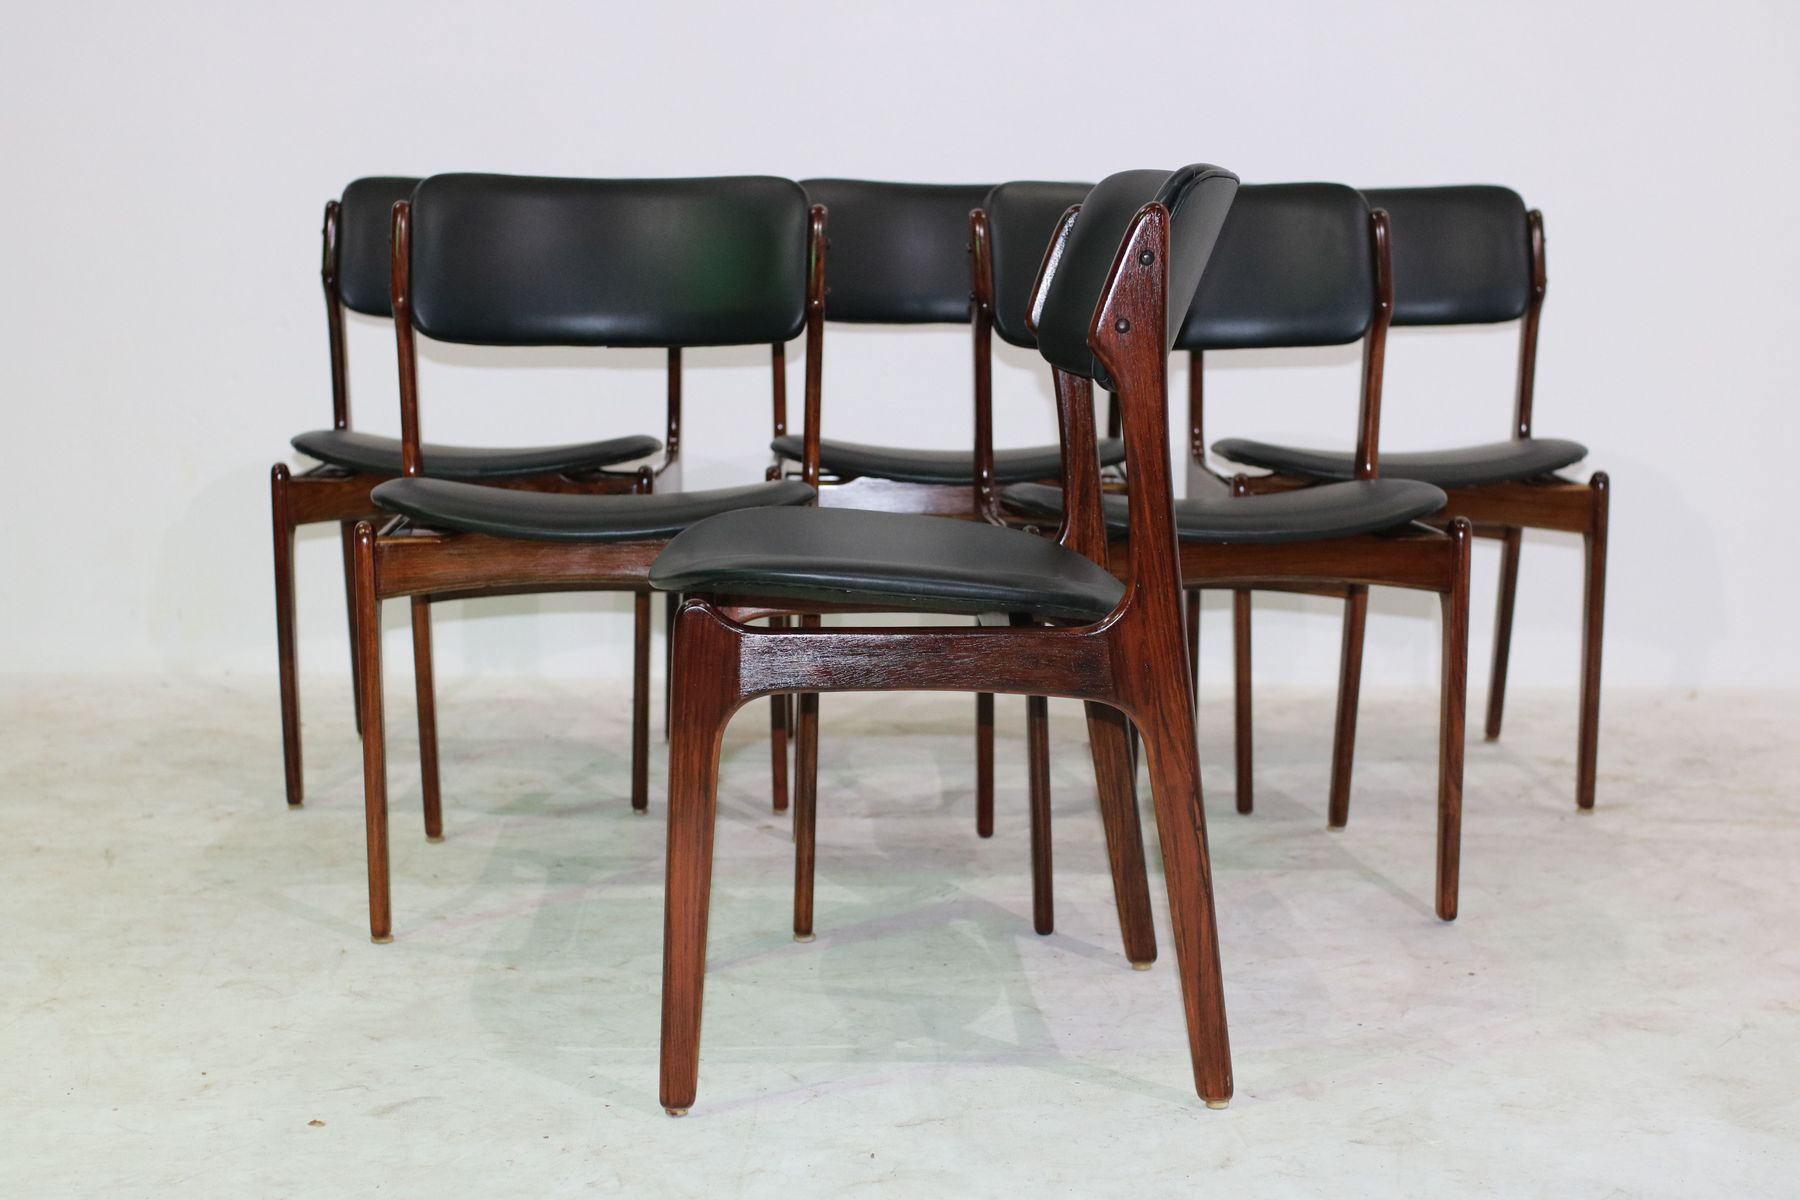 Dining Chair Price Rosewood Dining Chairs By Erik Buch For Oddense Maskinsnedkeri A S